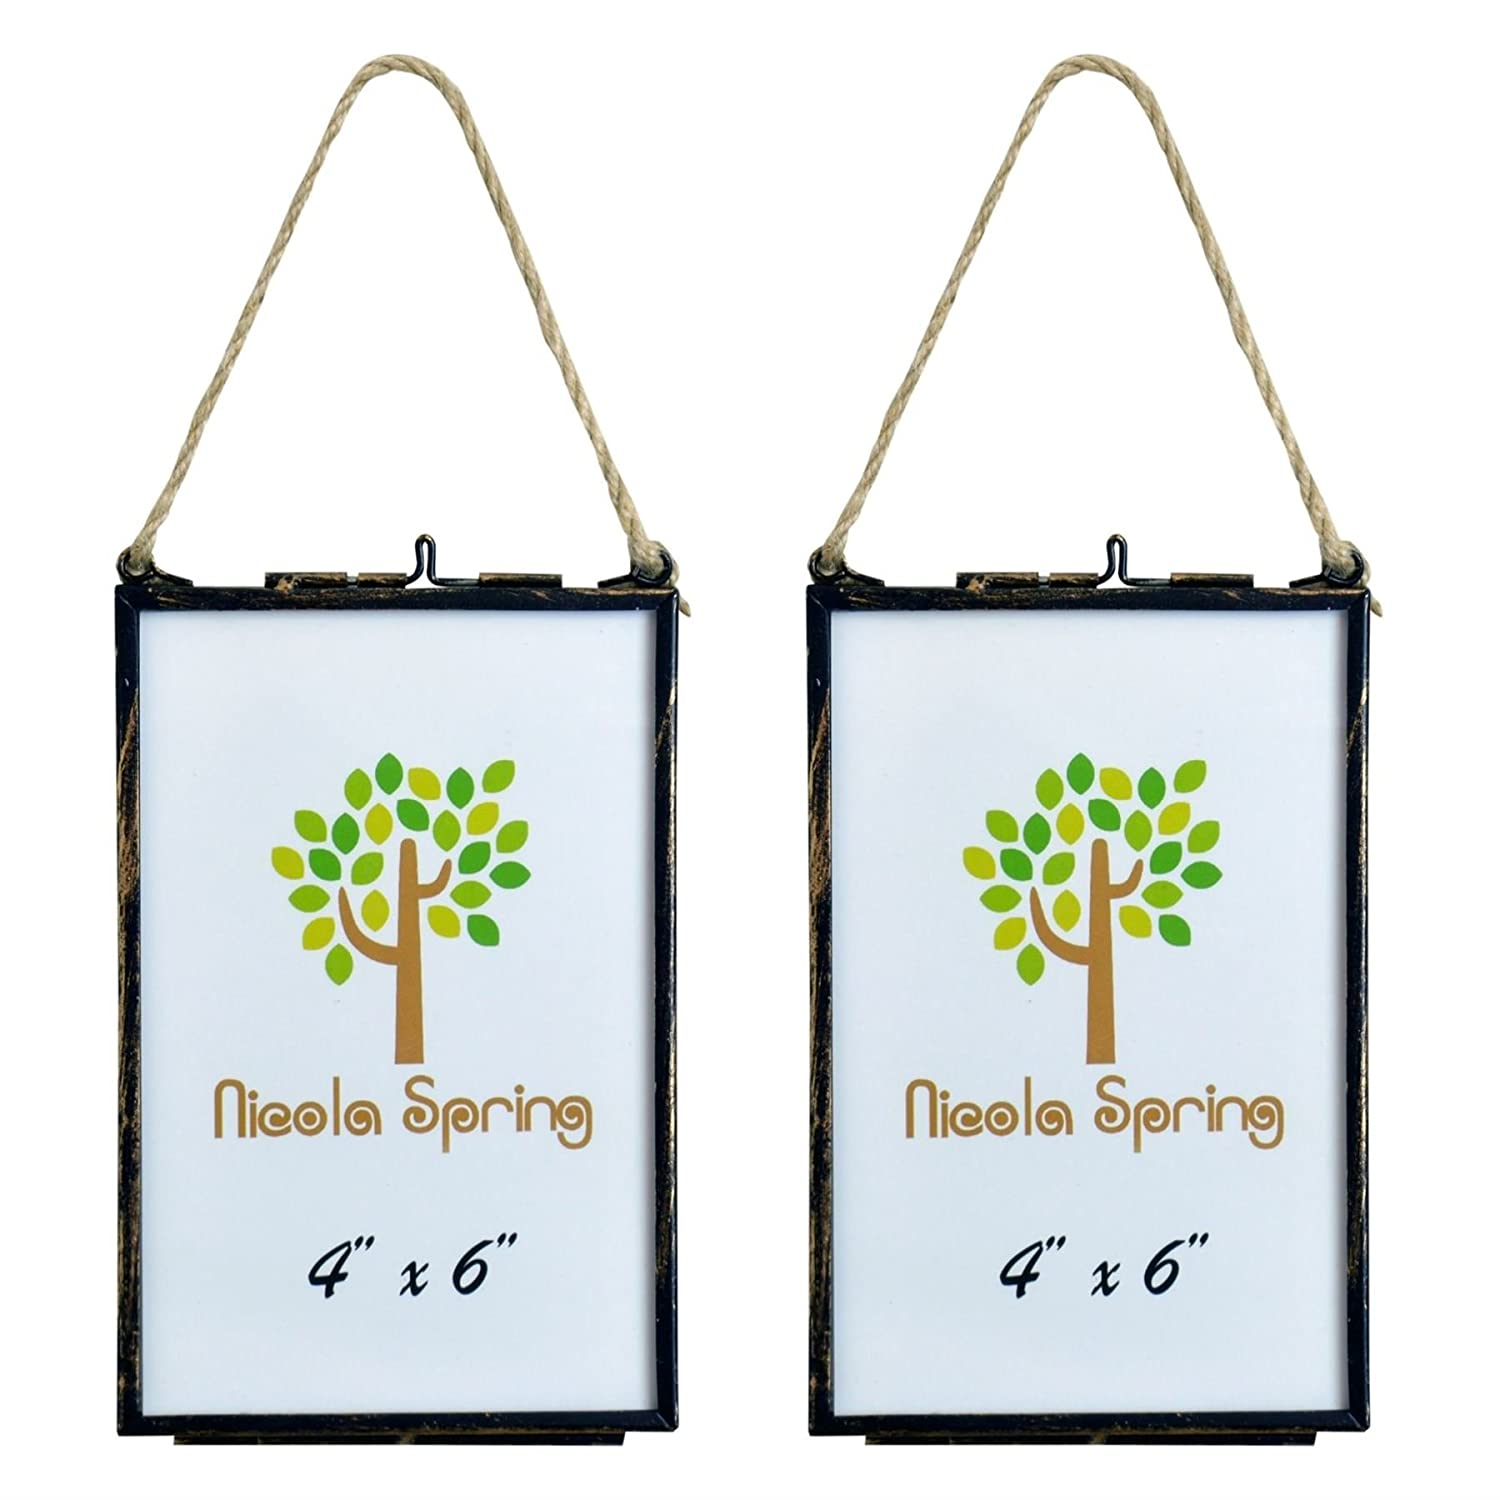 Pack Of 2 Nicola Spring Hanging Glass Vintage Photo Frame With Rope 4x6 Photos